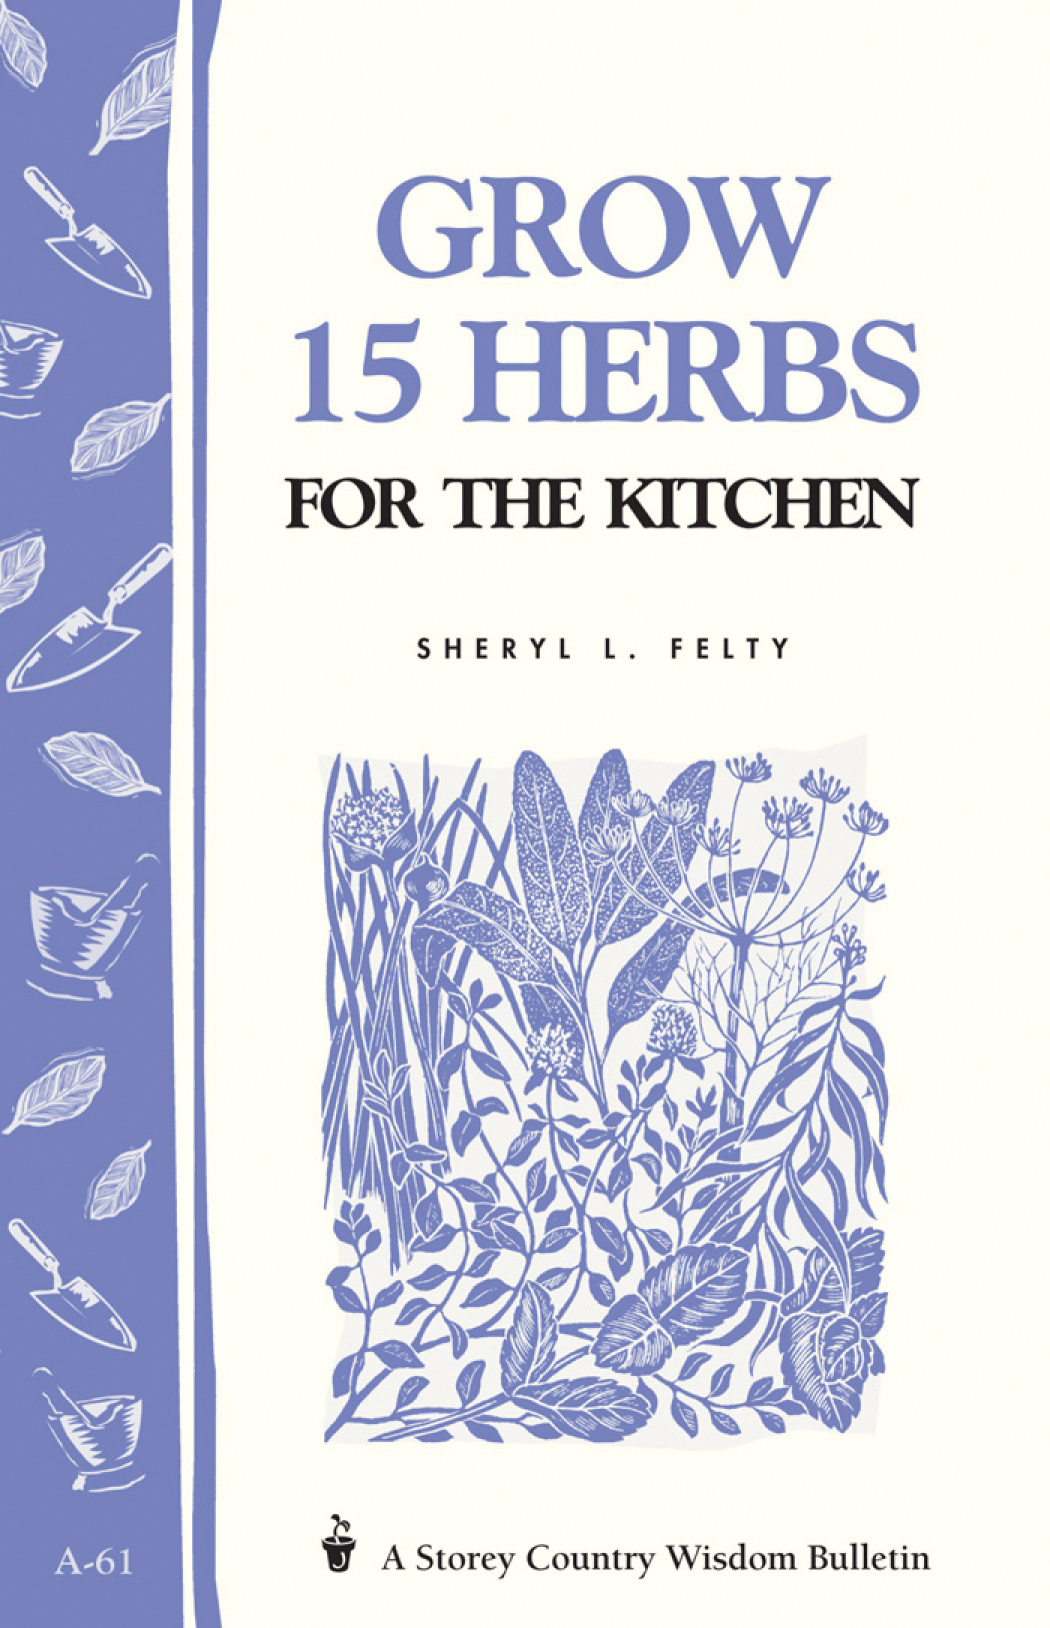 Grow 15 Herbs for the Kitchen Storey's Country Wisdom Bulletin A-61 - Sheryl L. Felty